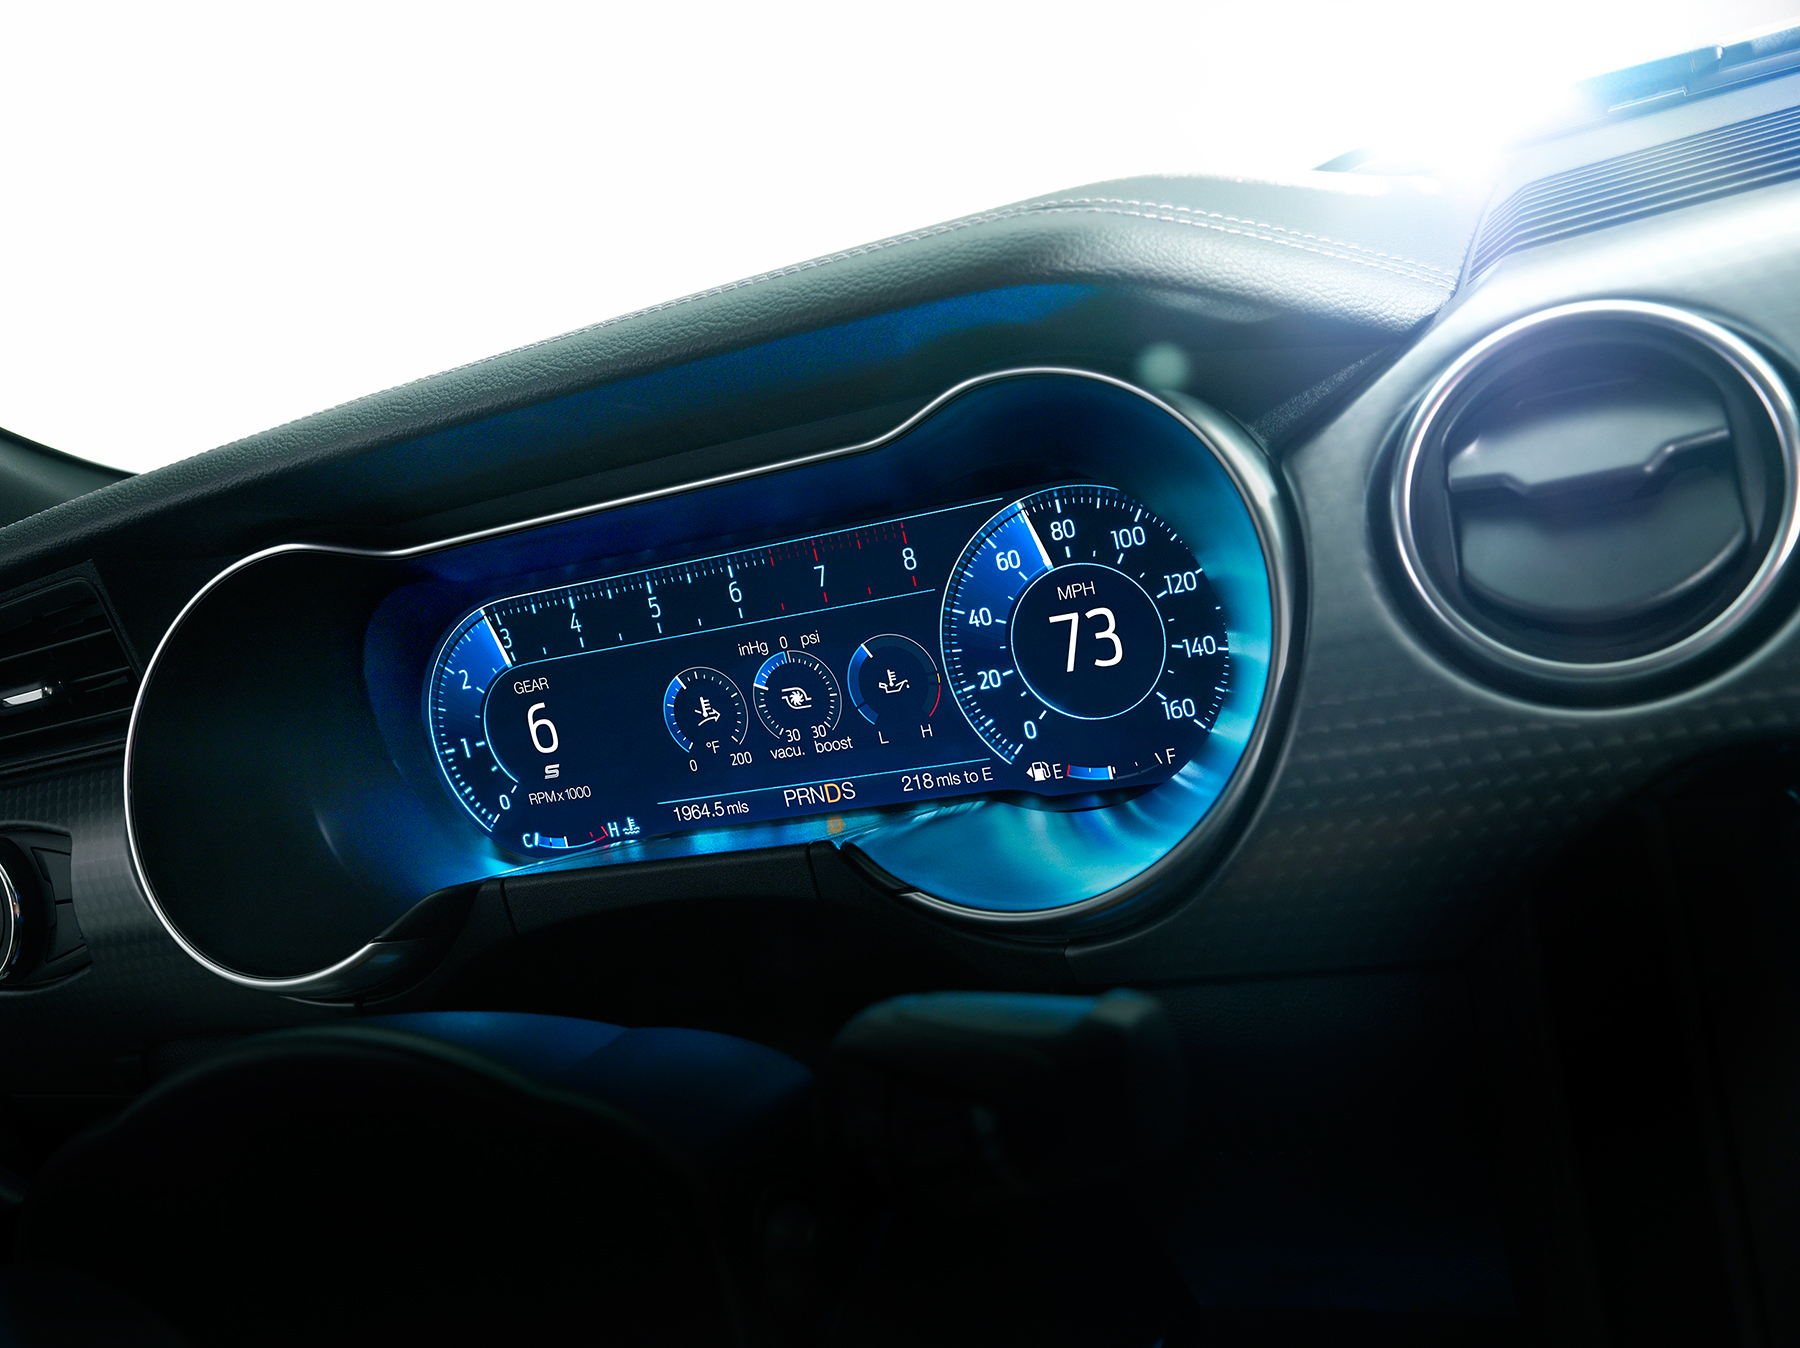 Visteon_instrument_cluster_on_Ford_Mustang